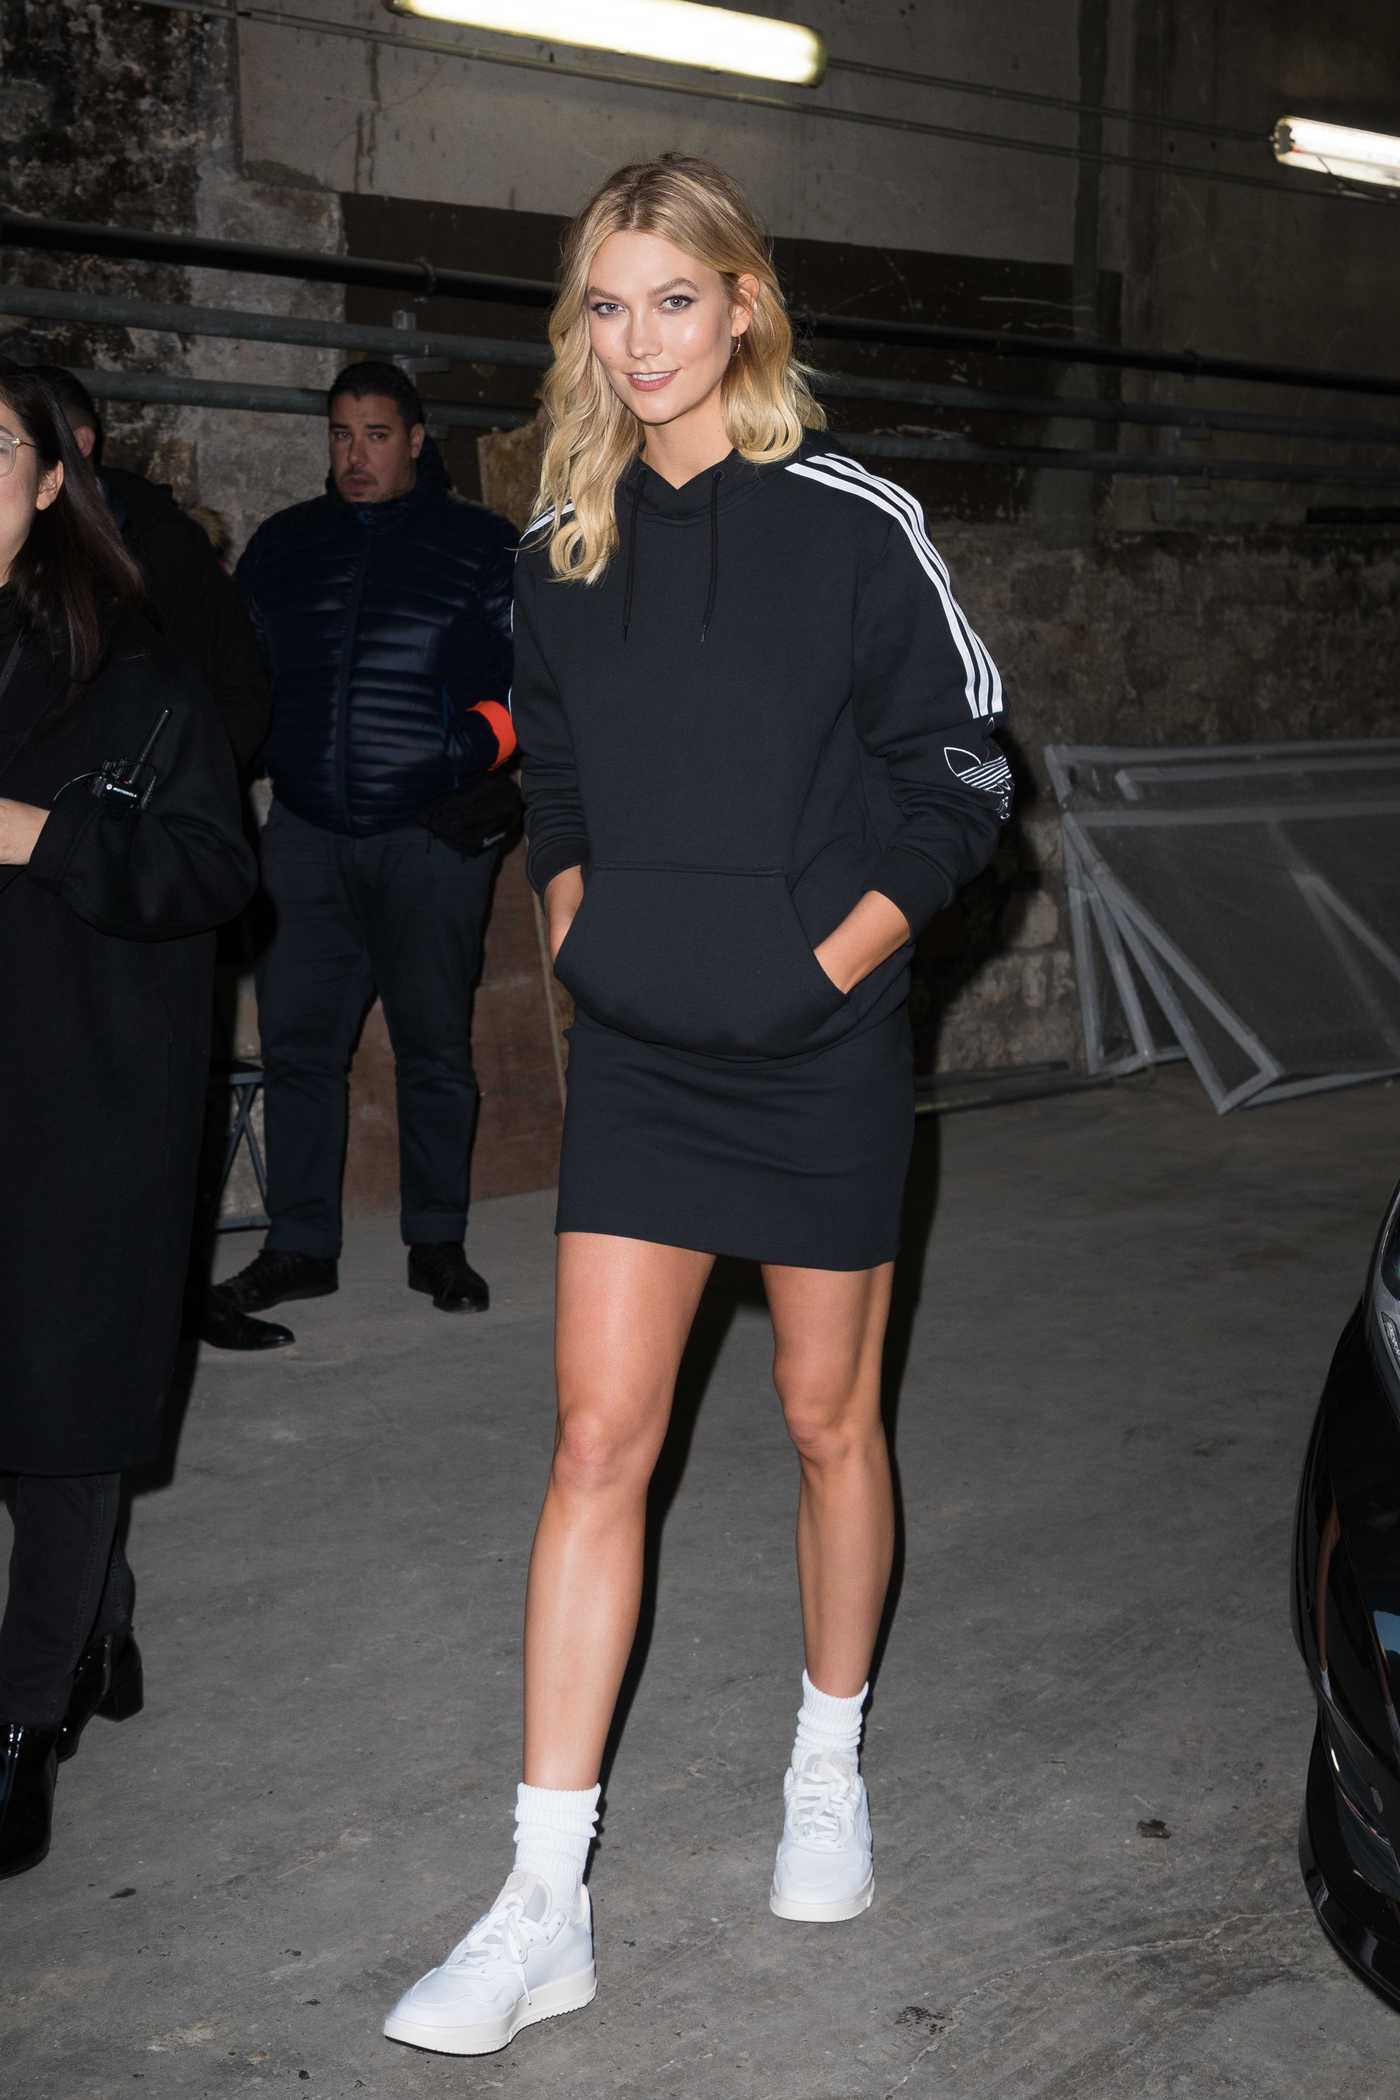 Karlie Kloss in a Black Adidas Hoody Leaves the Adidas Show During the Paris Fashion Week in Paris 01/18/2019